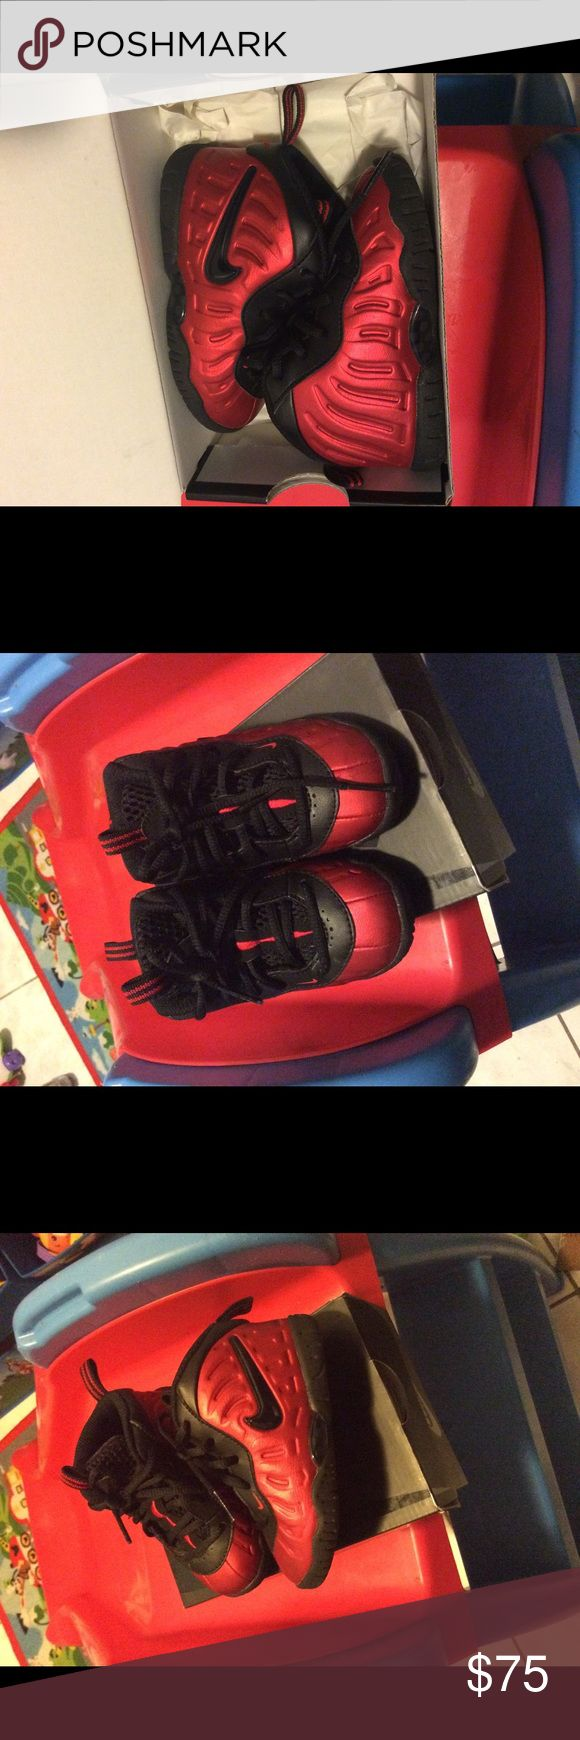 Nike lil foam posites Nike lil foam posites like new no scuffs used twice. Price is firm!!!!! Nike Shoes Sneakers